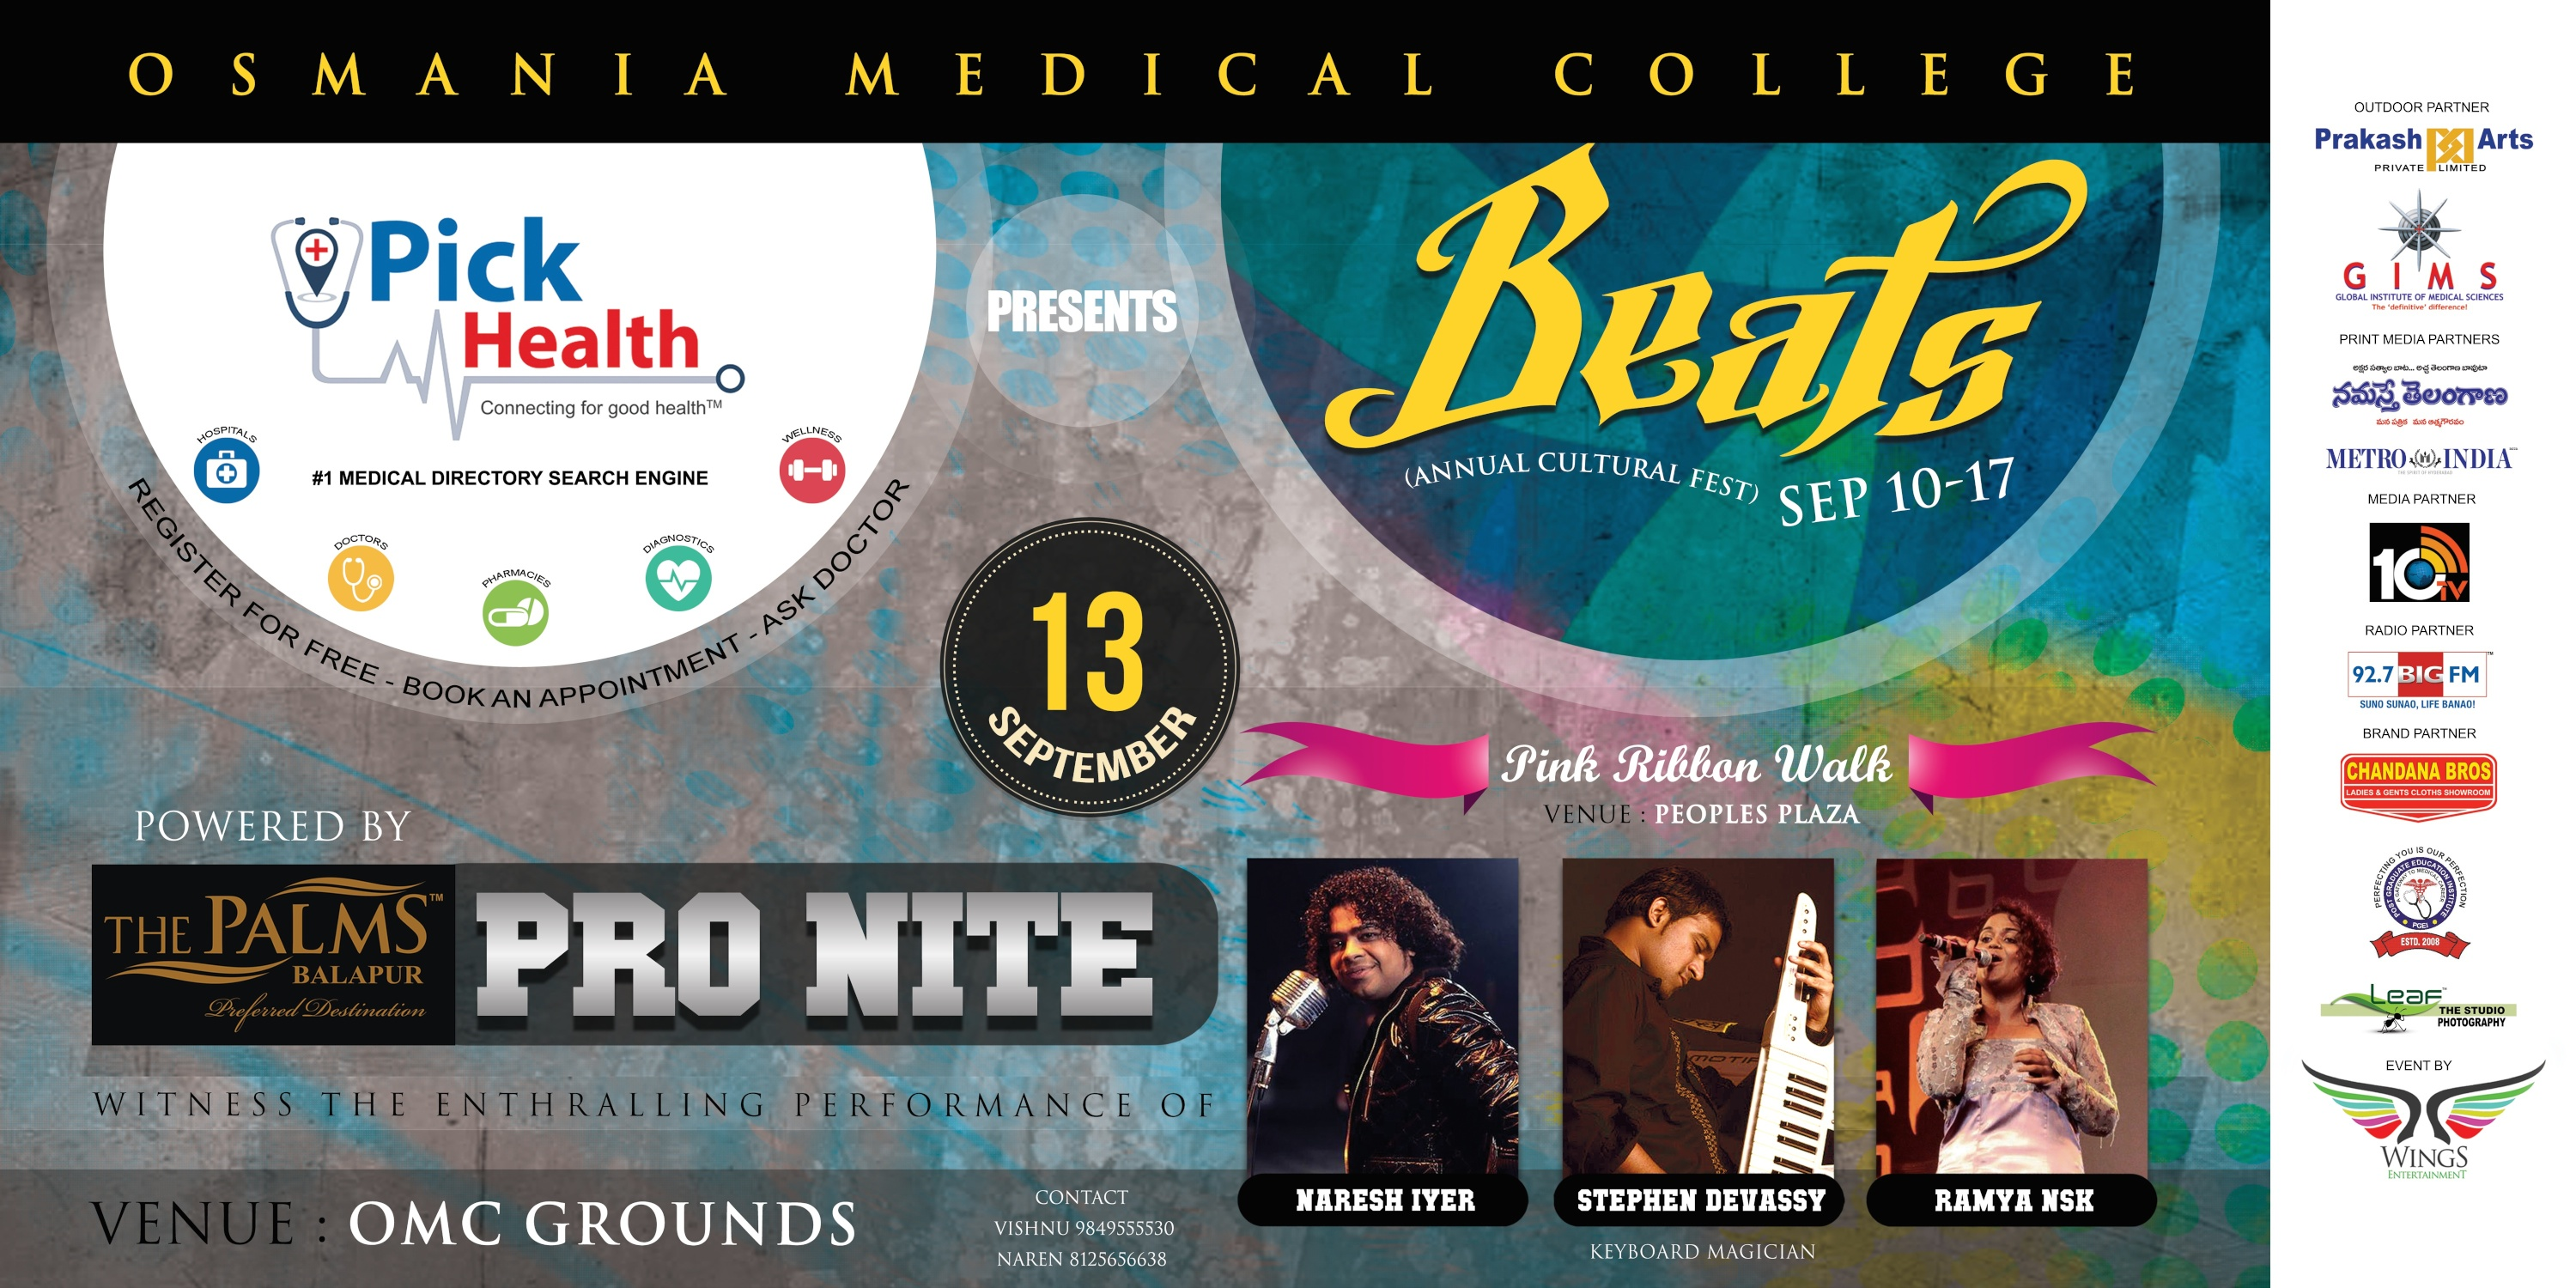 BEATS-2014 LIVE MUSIC CONCERT by NARESH IYER,STEPHEN DEVASSY  RAMYA NSK with SOLID BAND